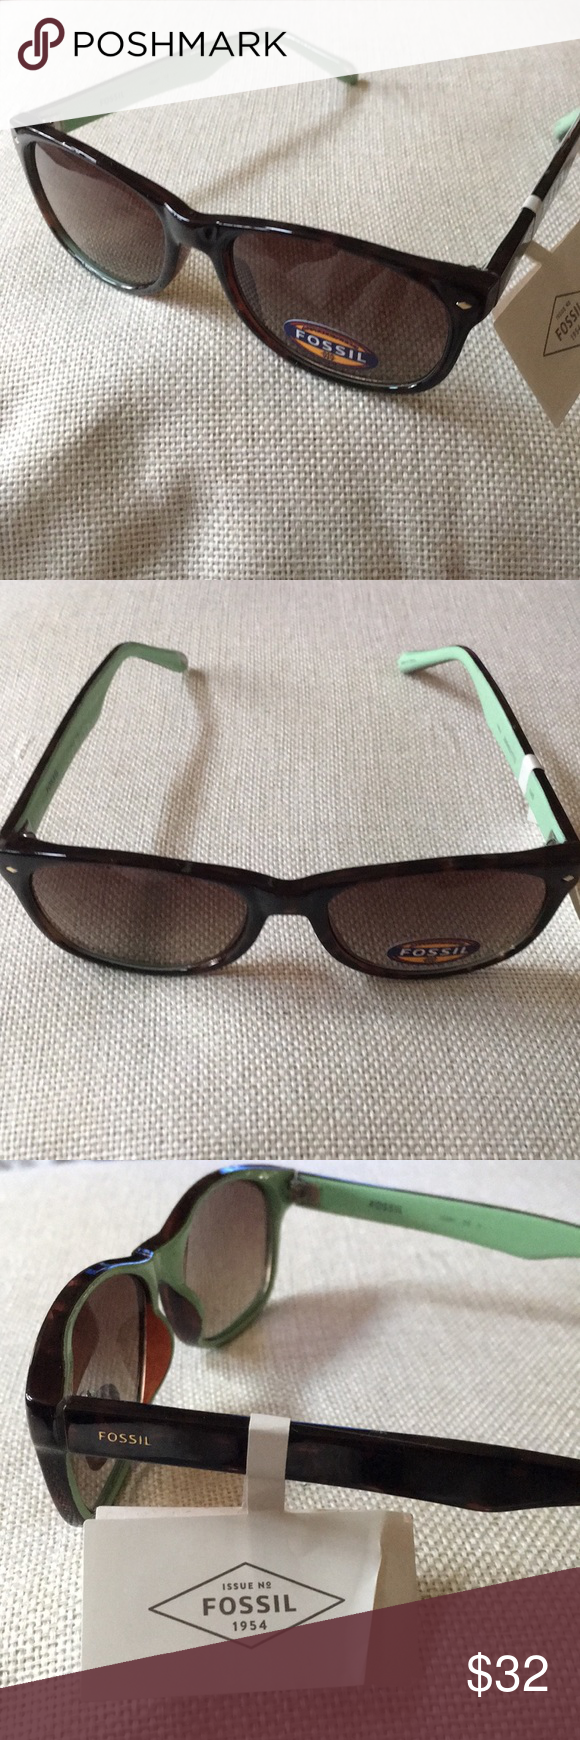 32e82eda8428 NWT Fossil Tortoise Shell   Mint Green Glasses Please see photos for  details Fossil Accessories Sunglasses